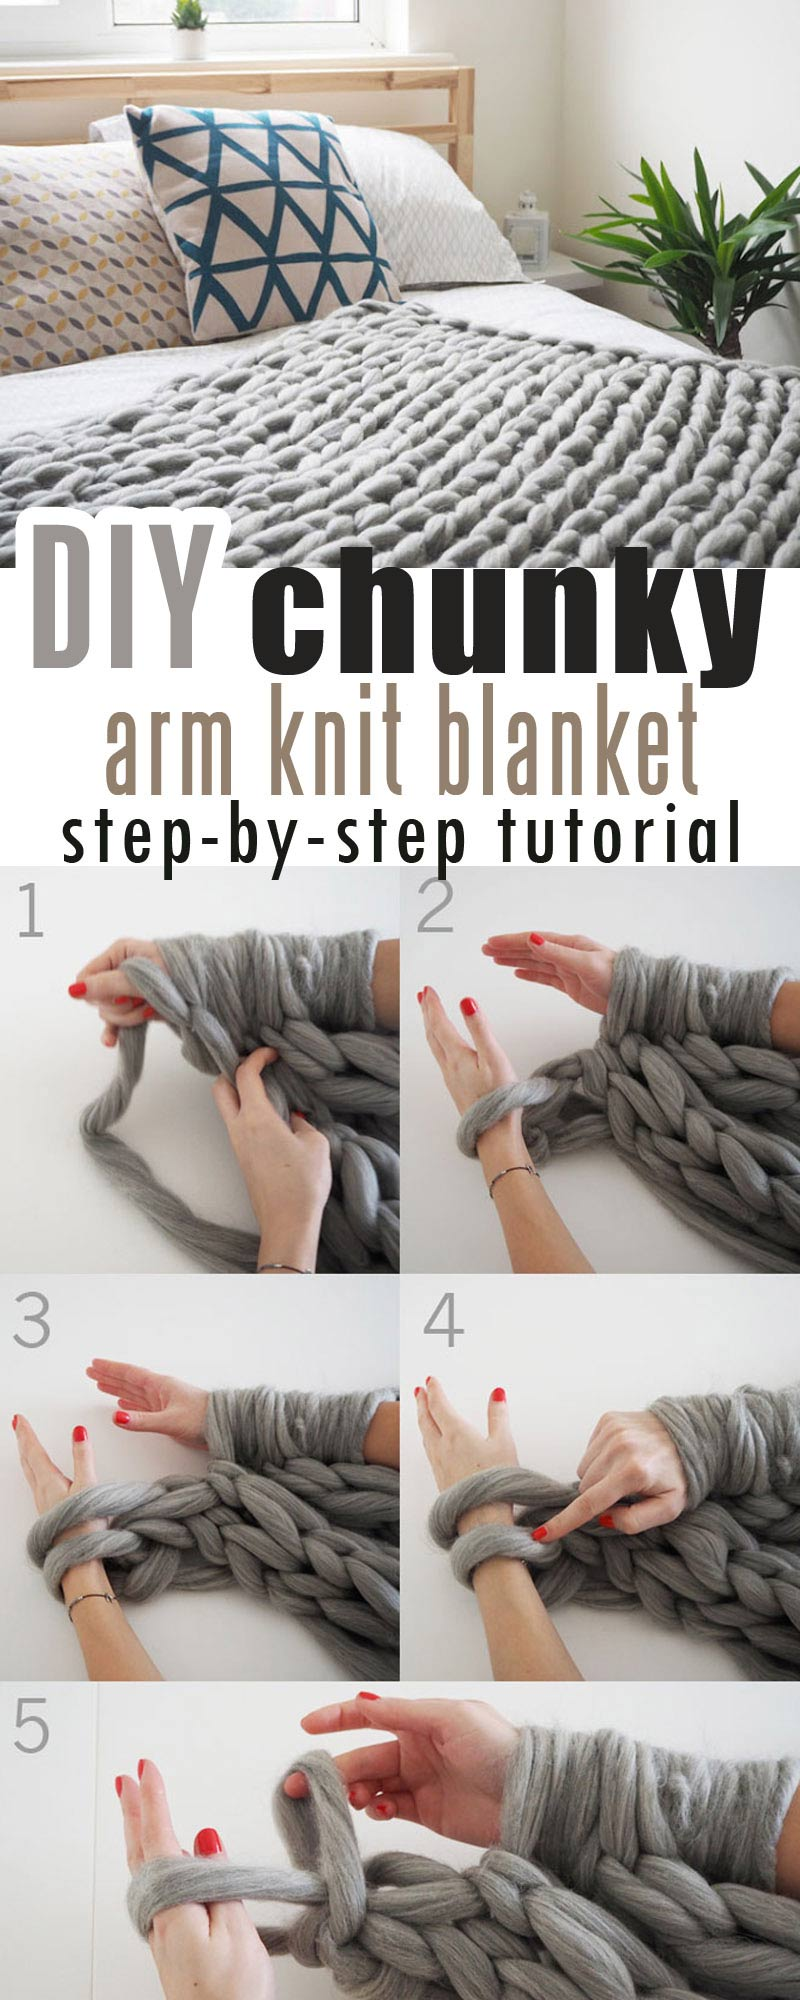 Giant kint arm blanket step by step tutorial #chunkyyarn #giantarmknit #diychunkyblanket #chunkyblanket #chunkythrow #chunkyyarn #chunkyyarnforarmknitting